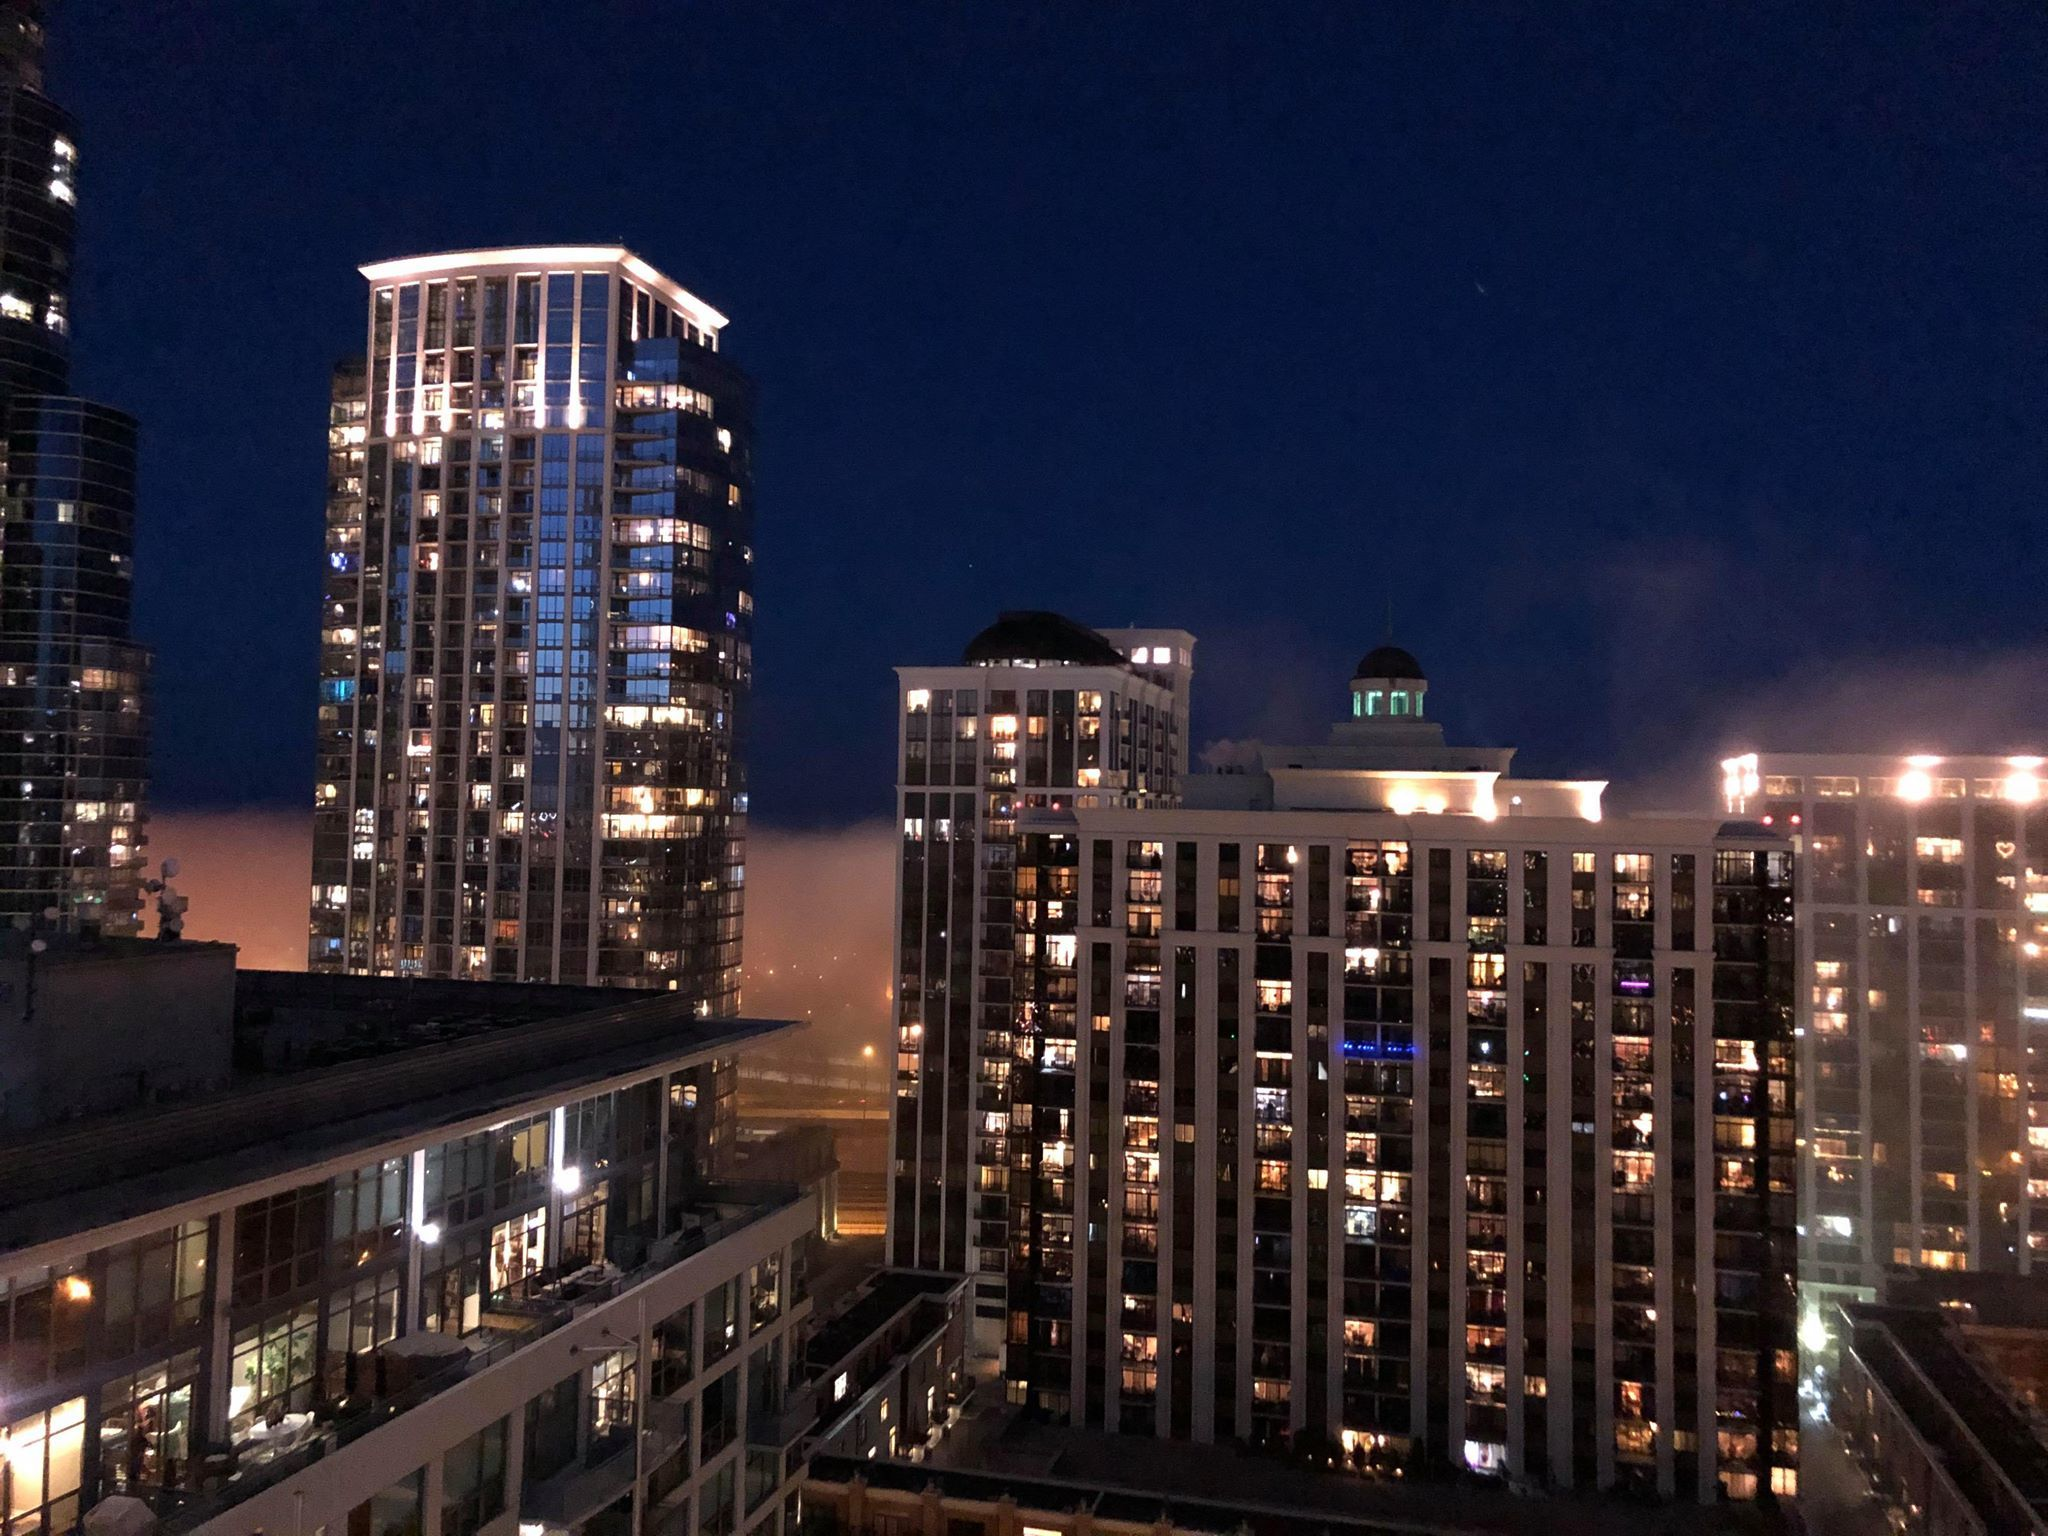 South Loop residents are saluting healthcare workers with nightly balcony celebrations